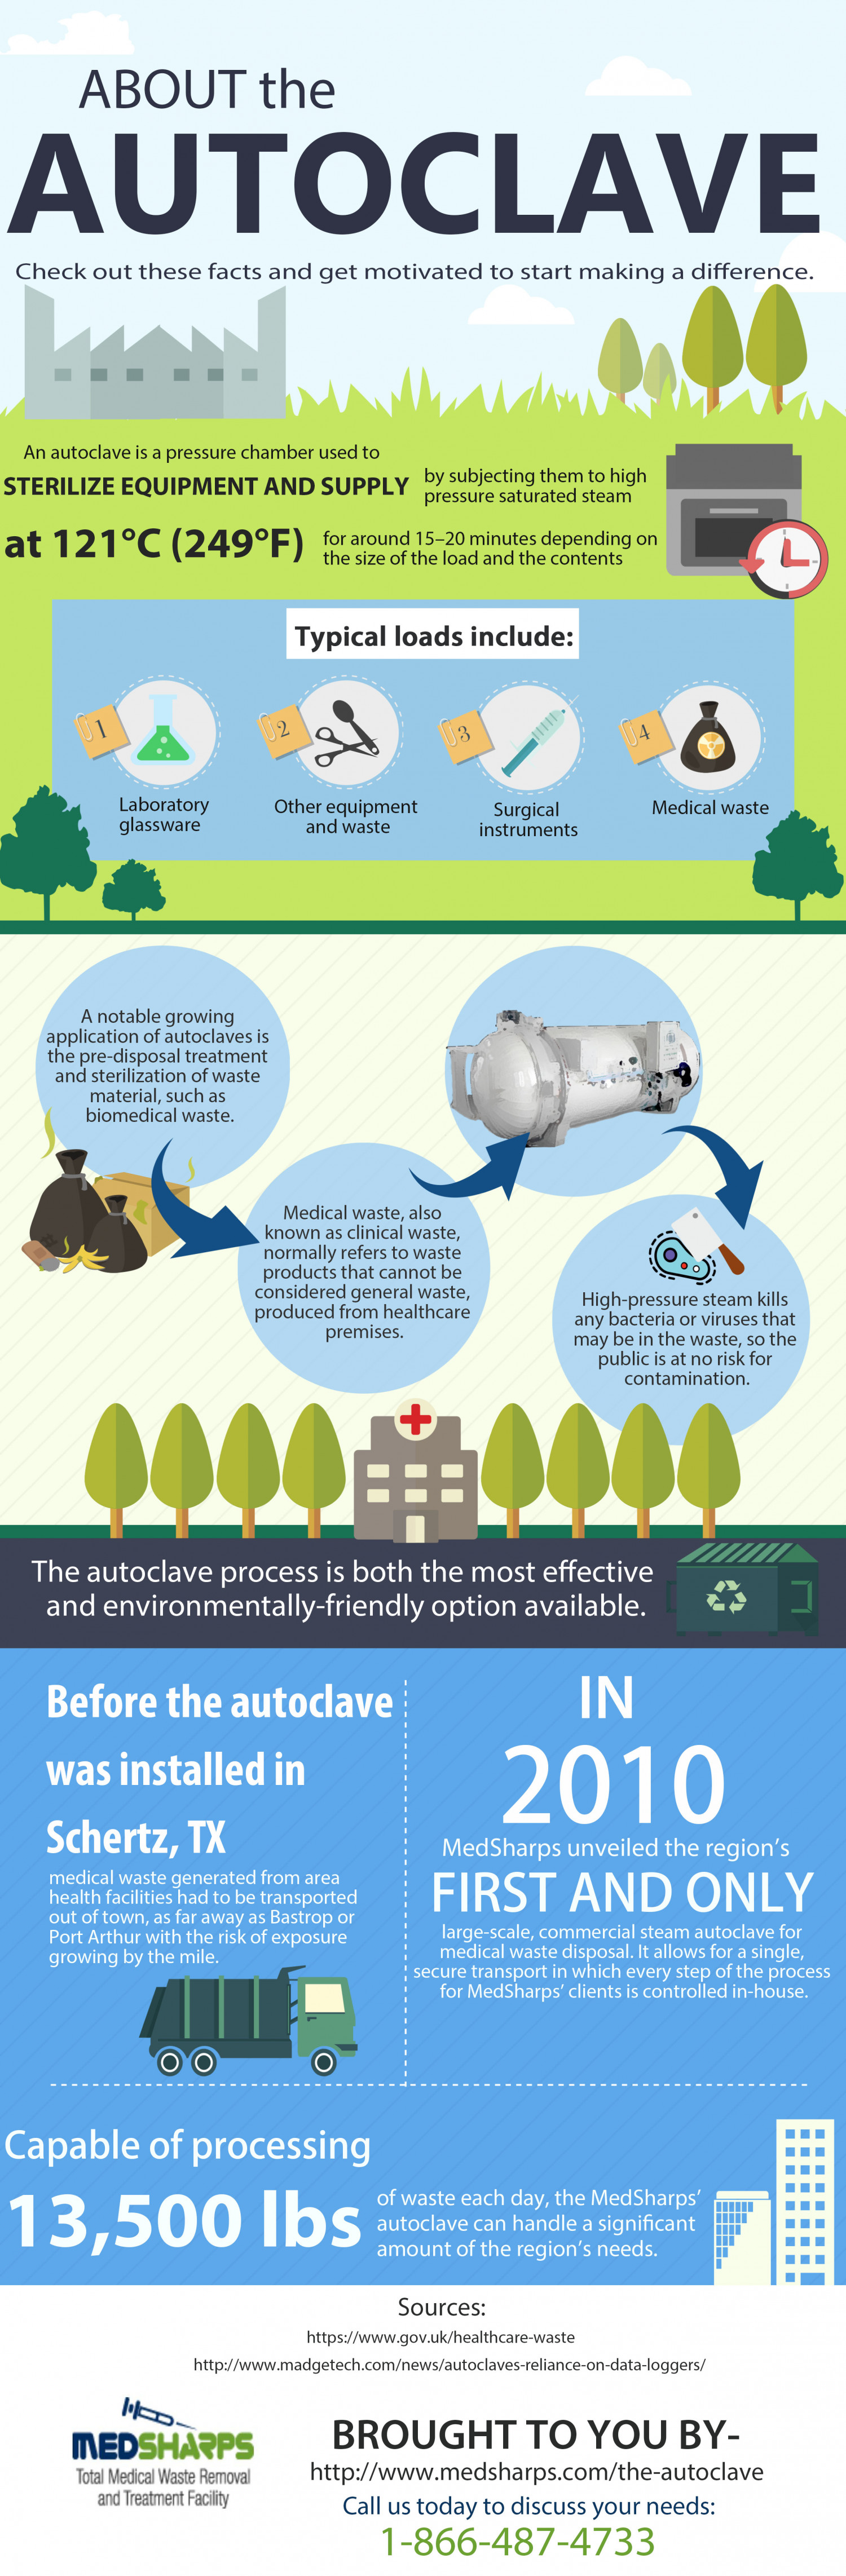 About the Autoclave Infographic